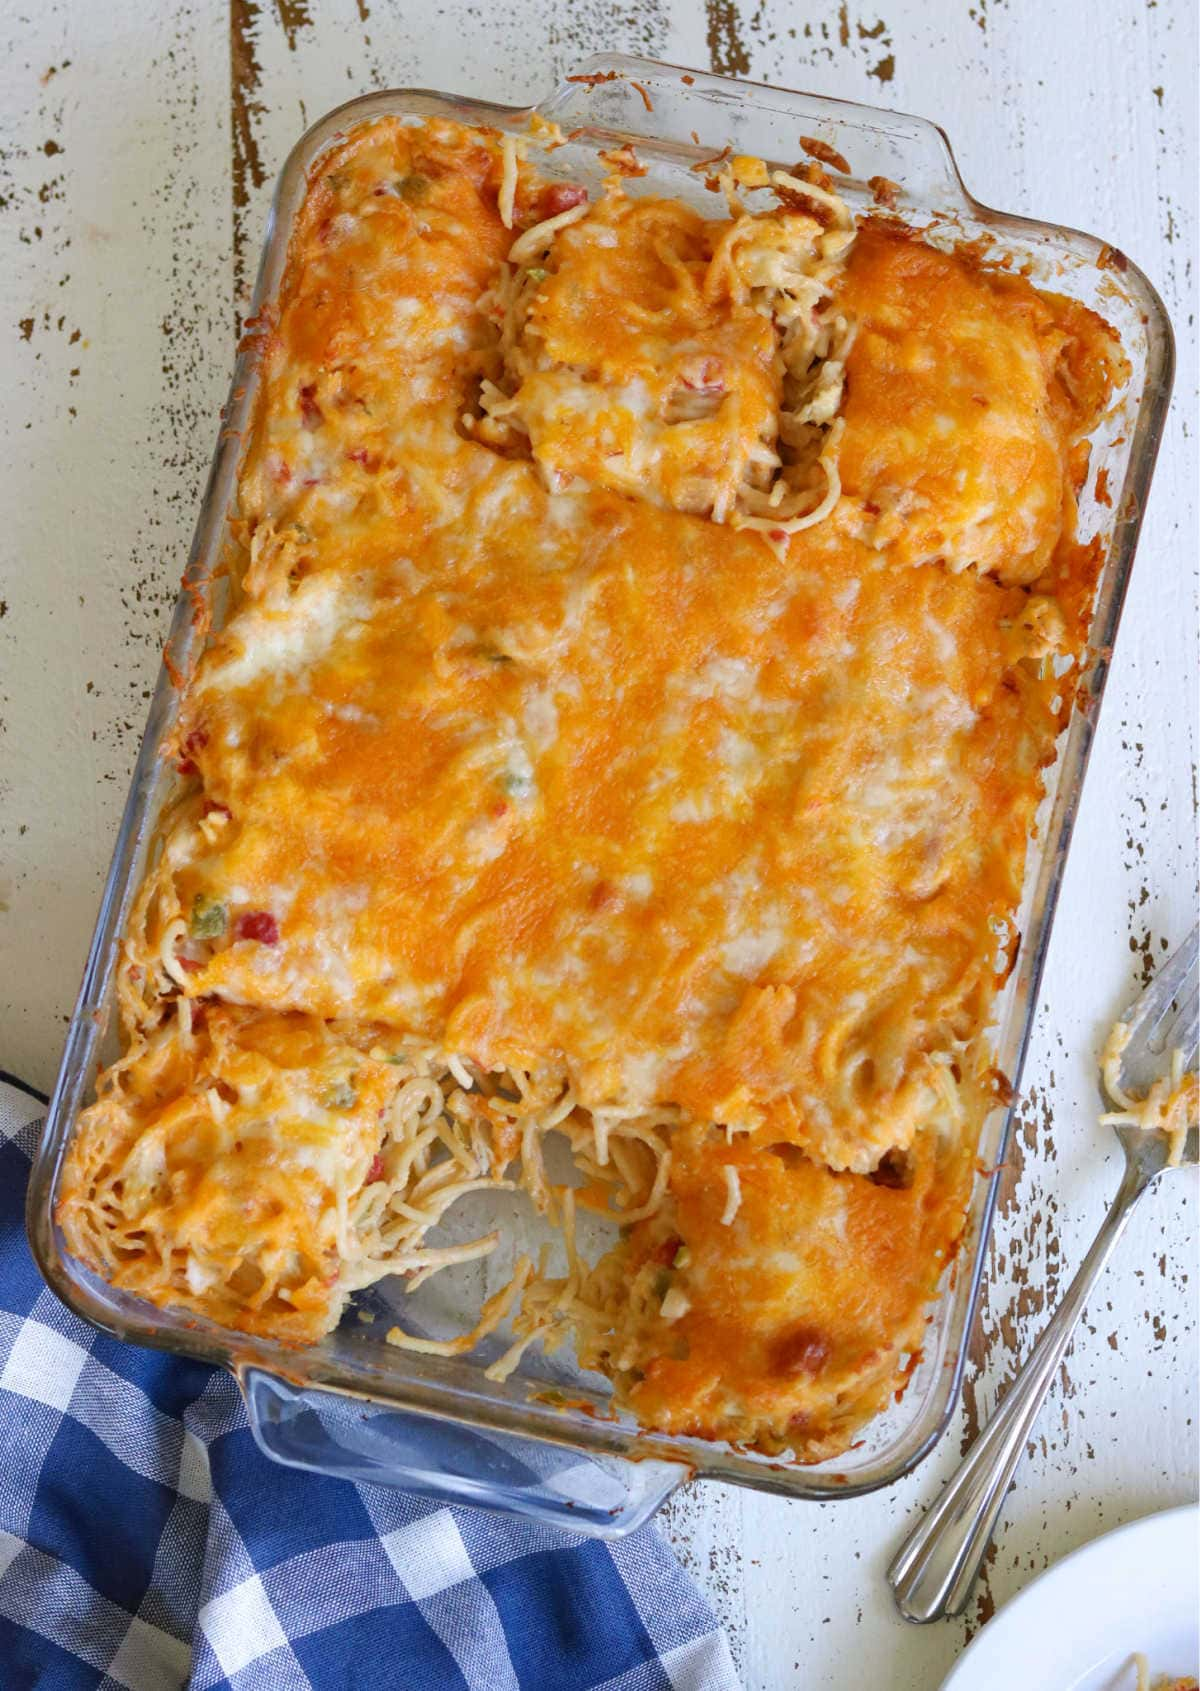 A baking dish with finished chicken spaghetti in itshowing the top of the casserole - one serving is removed.